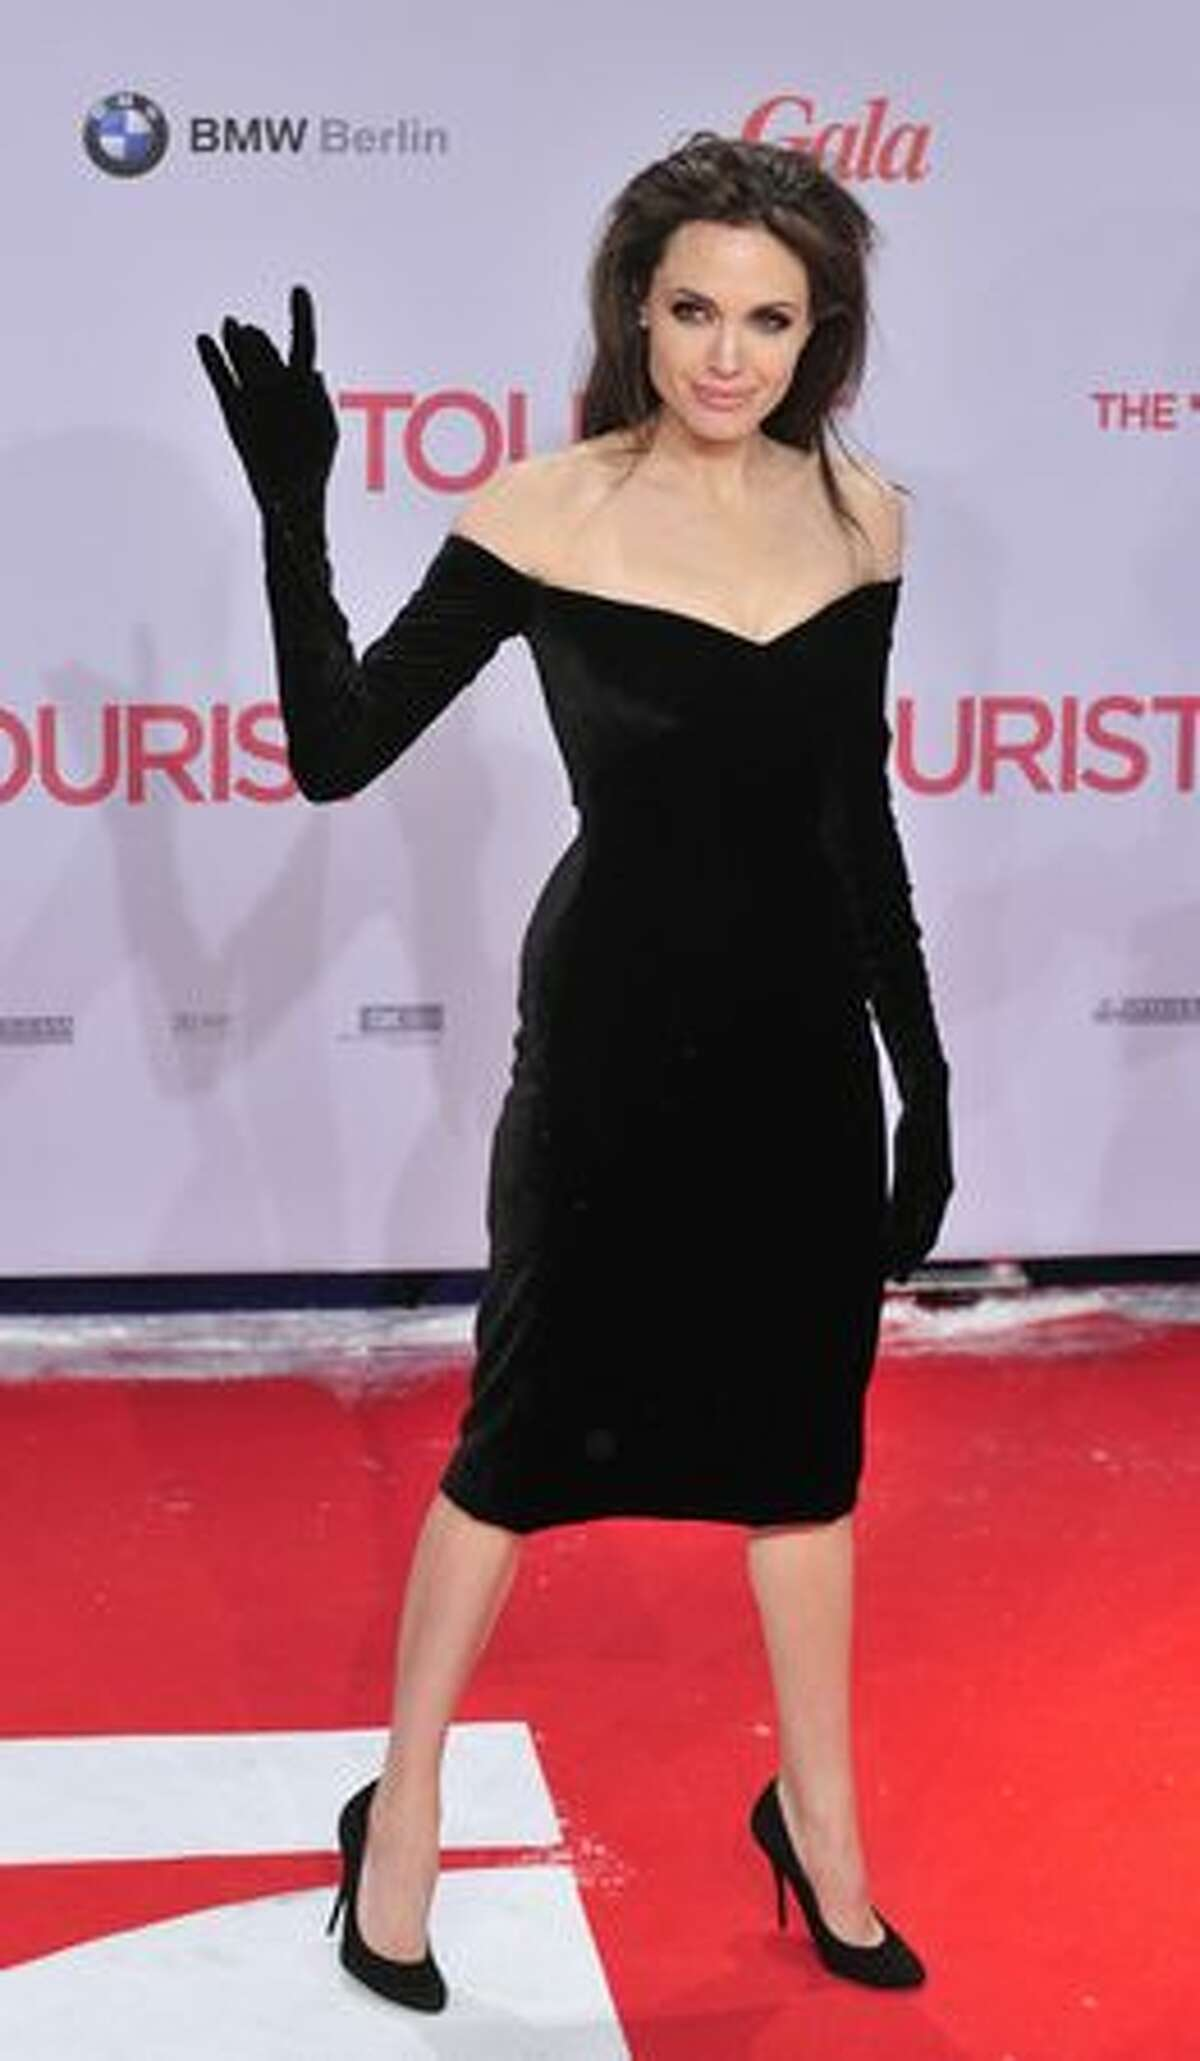 US actress Angelina Jolie waves as she arrives for the European premiere of The Tourist, by German director Florian Henckel von Donnersmarck, in Berlin Tuesday.